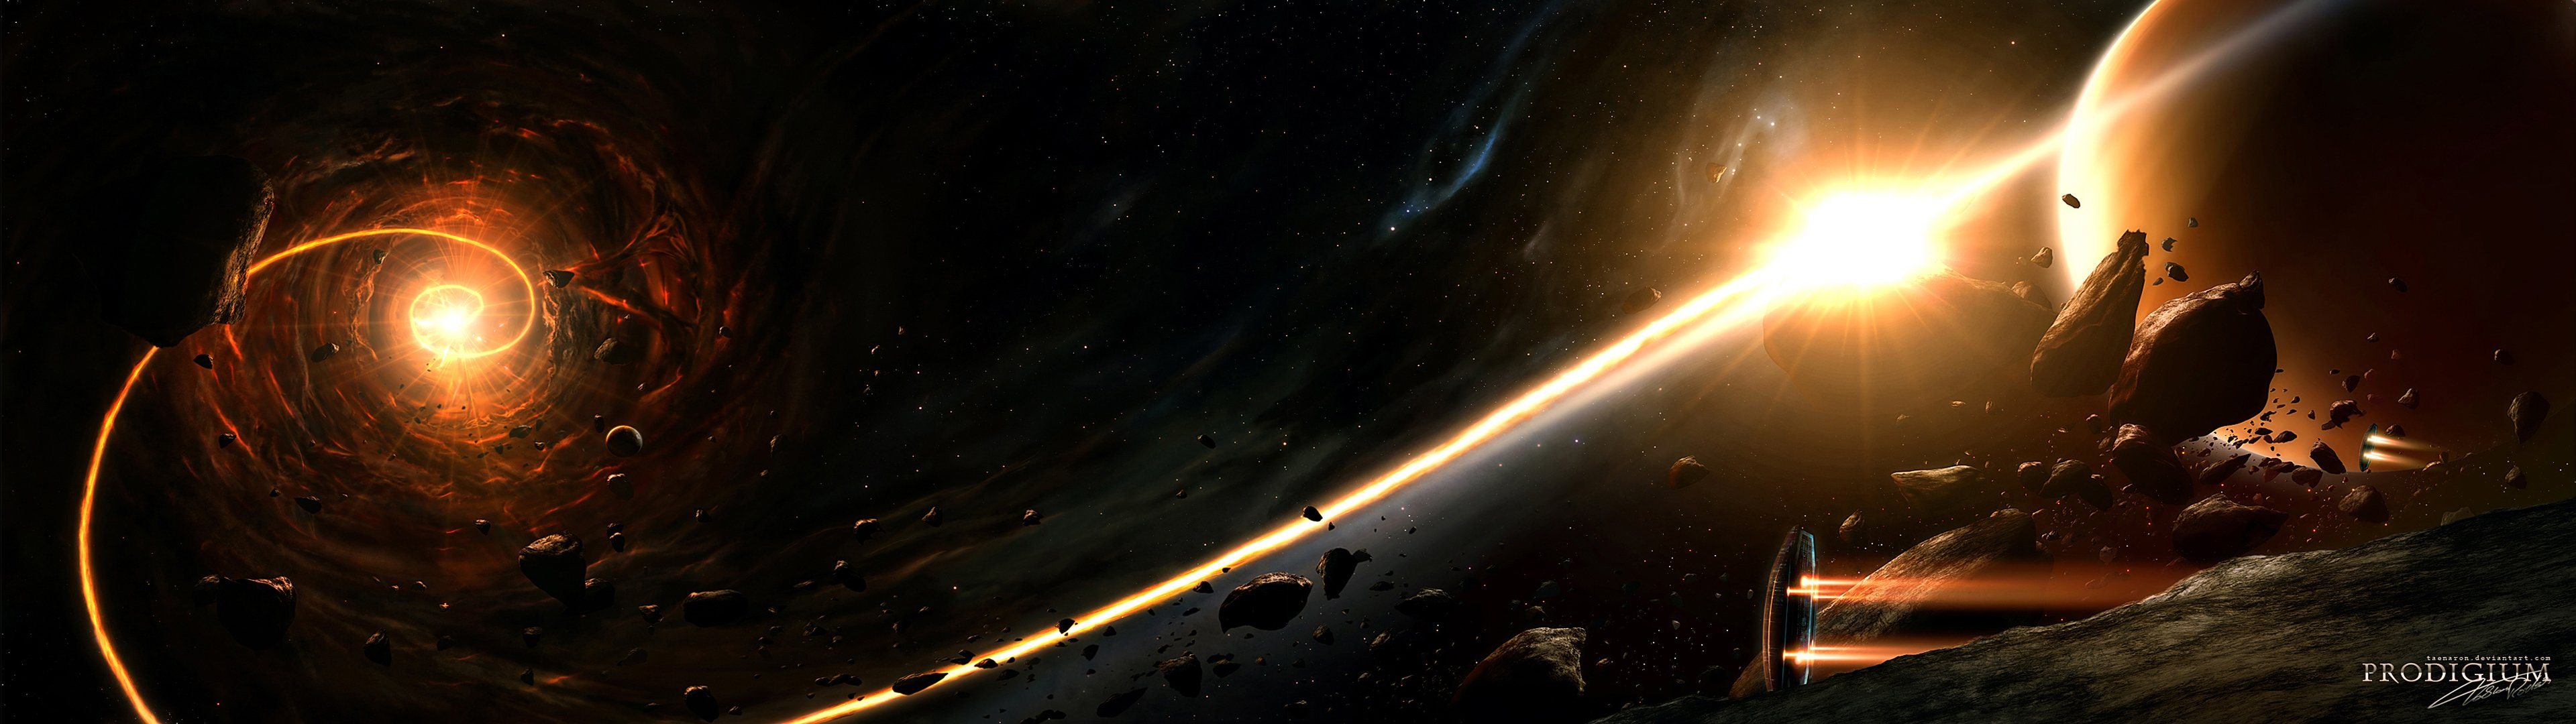 Sunrise outer space planets wallpaper 3840x1080 329246 3840x1080